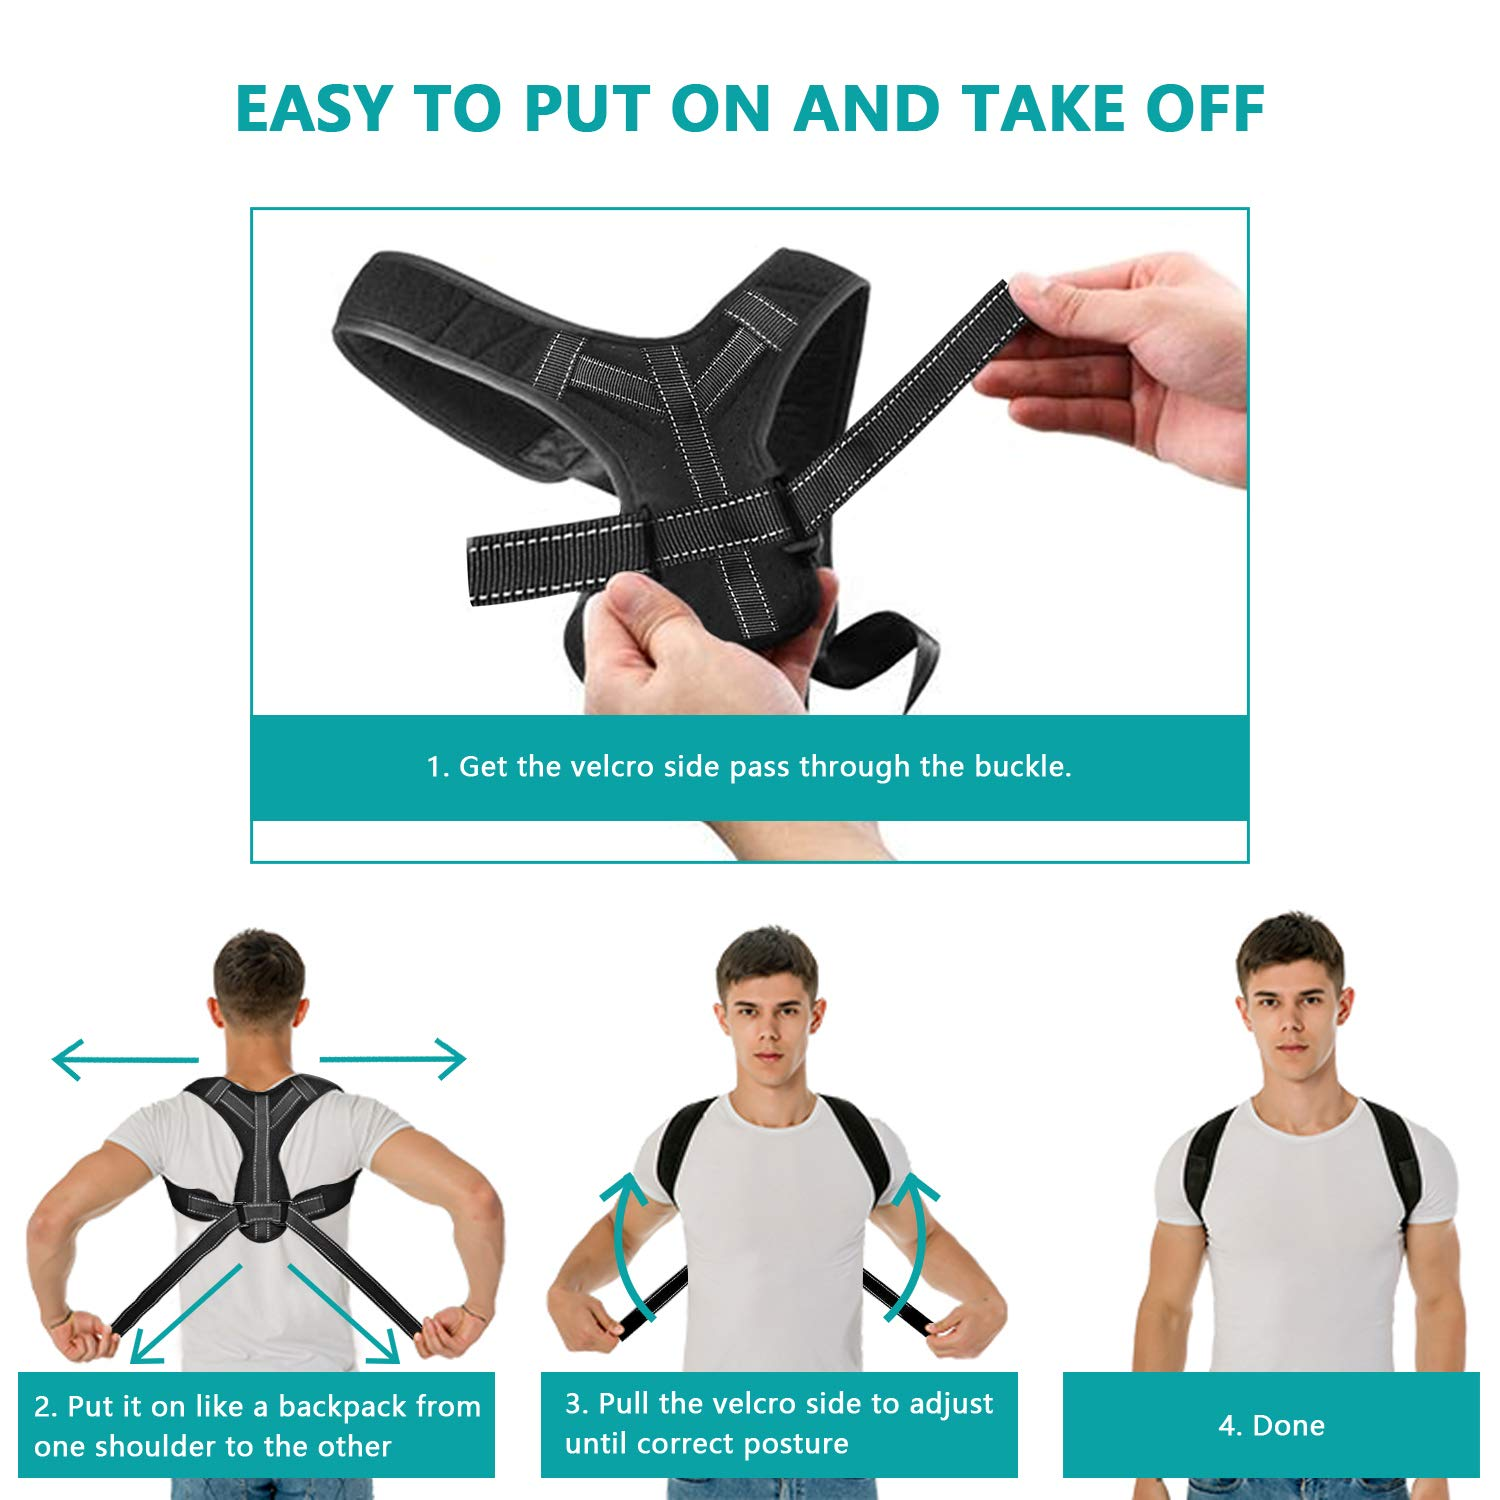 Posture Corrector for Men Women Upper Back Straightener Brace for Clavicle Support Adjustable Shoulder Brace for Posture Correction and Pain Relief from Neck, Back and Shoulder (Black, one Size)